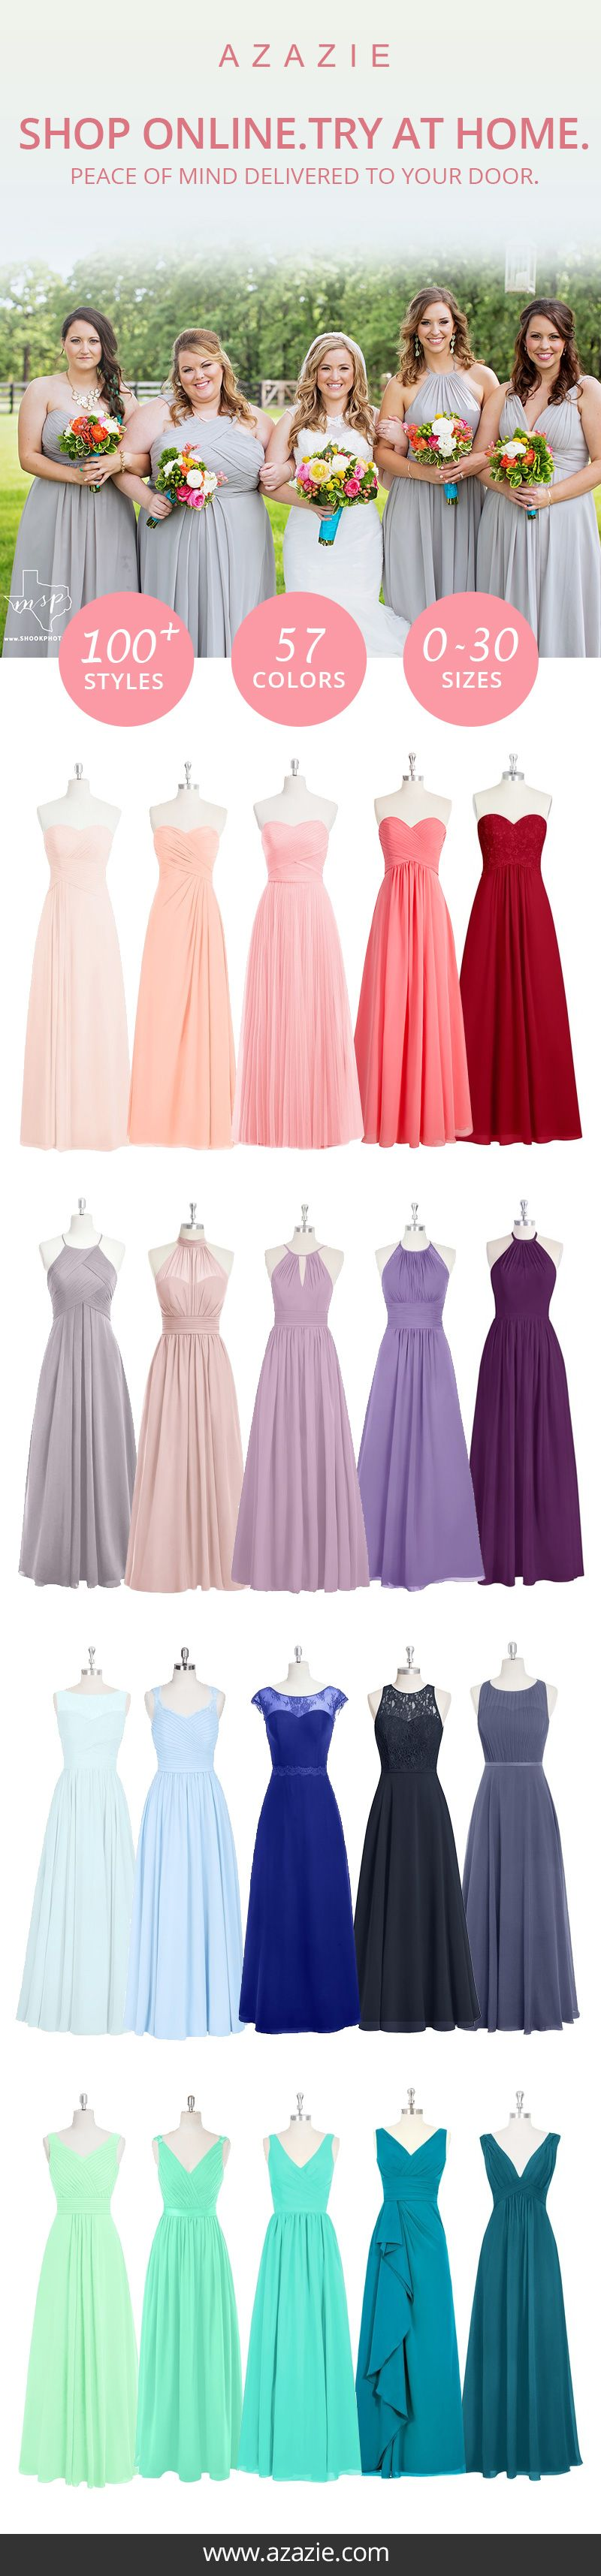 On the quest for the perfect dress? Experience Azazie's sample program and try on the dresses before you take the plunge! With over 100 styles, 57 colors and a wide range of sizes beginning from 0 to 30, perfect for your wedding party needs!